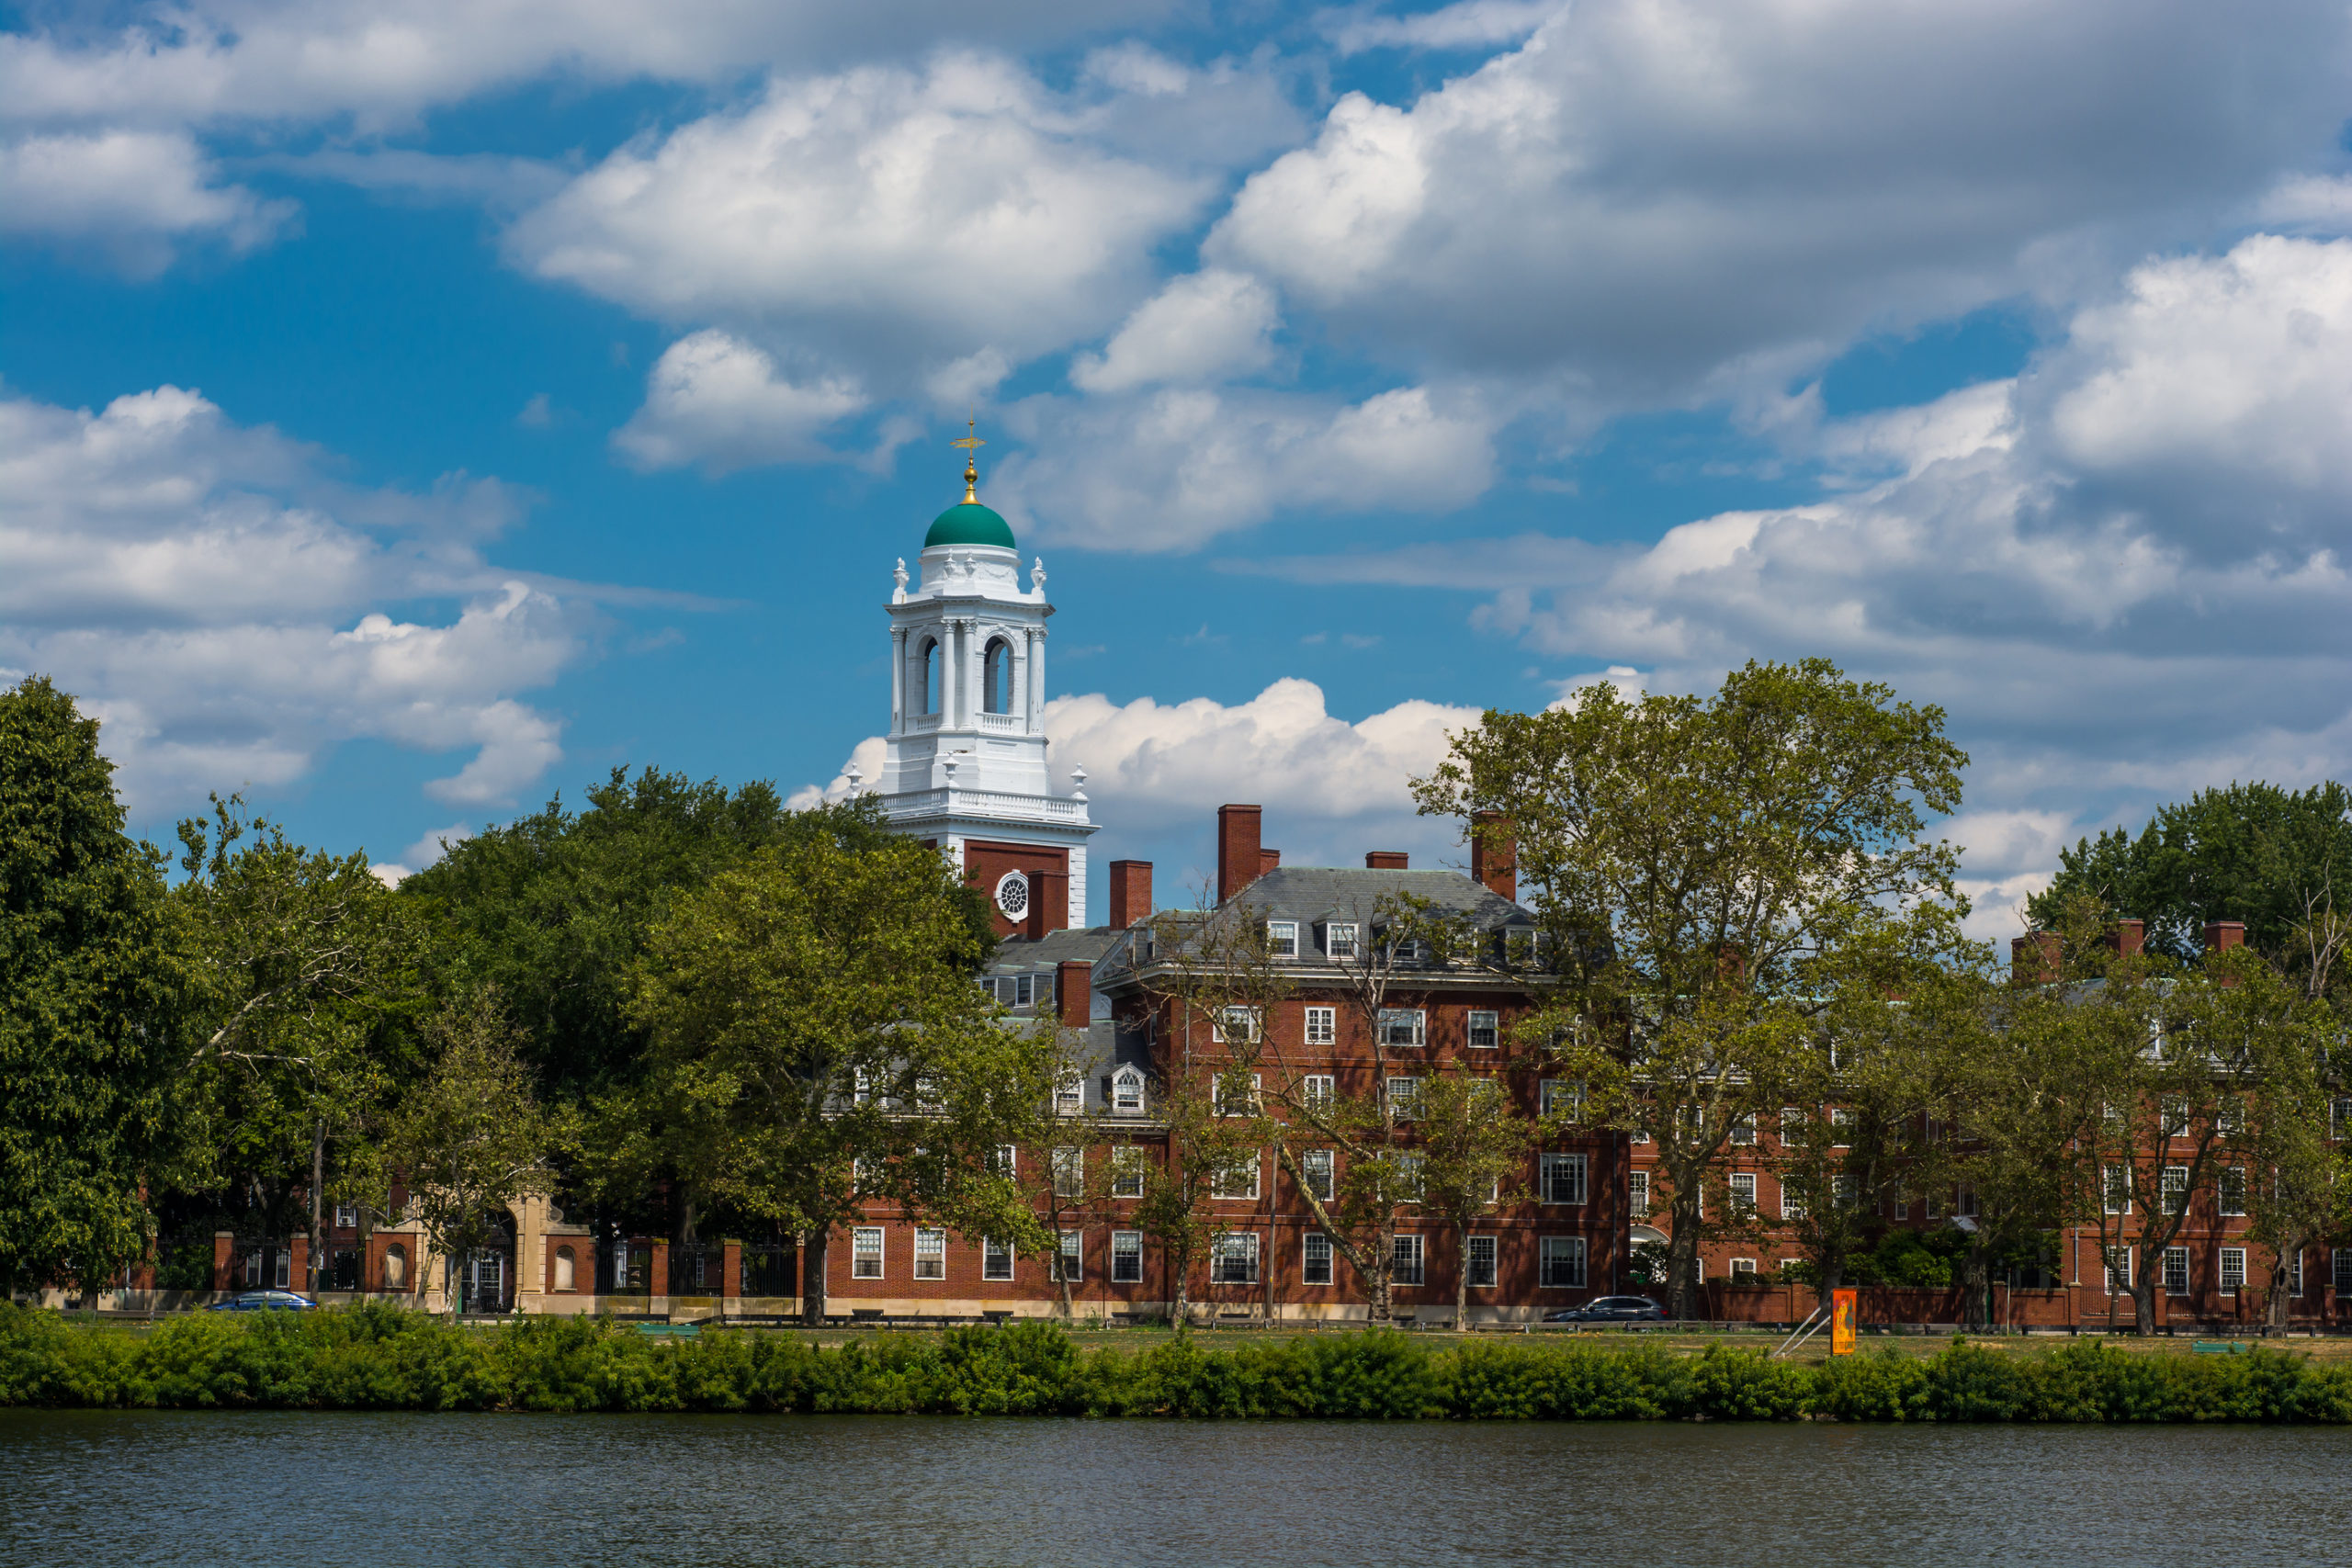 Eliot house Harvard University Cambridge Massachusettes. On the bank of the Charles River